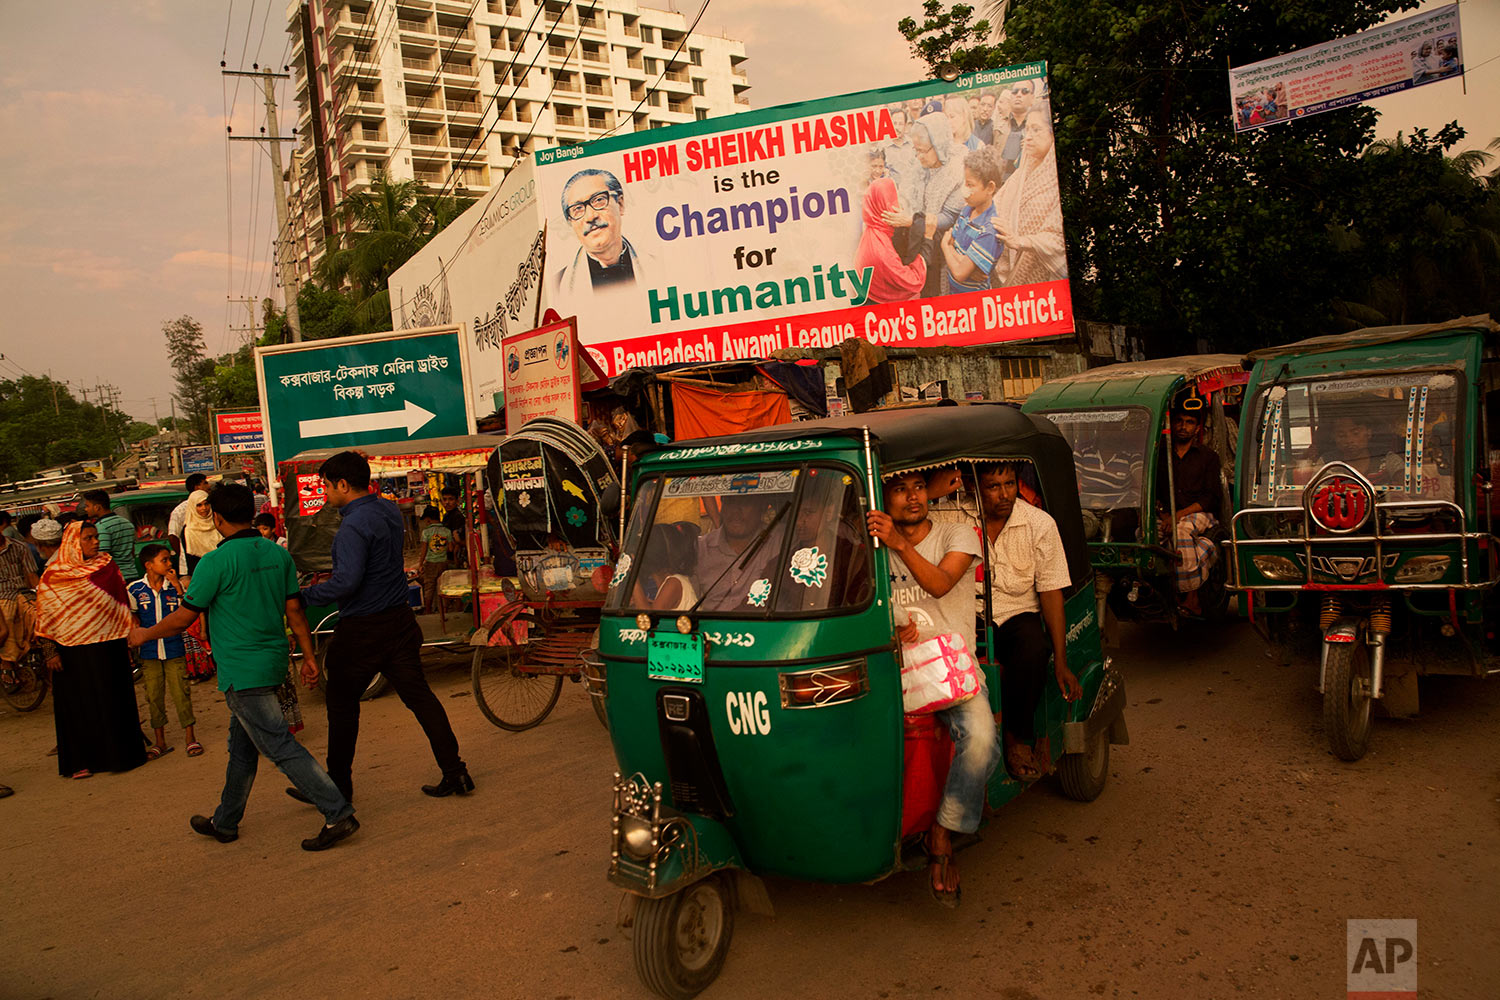 In this Saturday, Sept. 23, 2017 photo, Bangladeshis crowd a tuk-tuk on a street with a billboard in appreciation of Bangladesh's Prime Minister Sheikh Hasina for sheltering Rohingya Muslims fleeing Myanmar, in Cox's Bazar, Bangladesh. (AP Photo/Bernat Armangue)